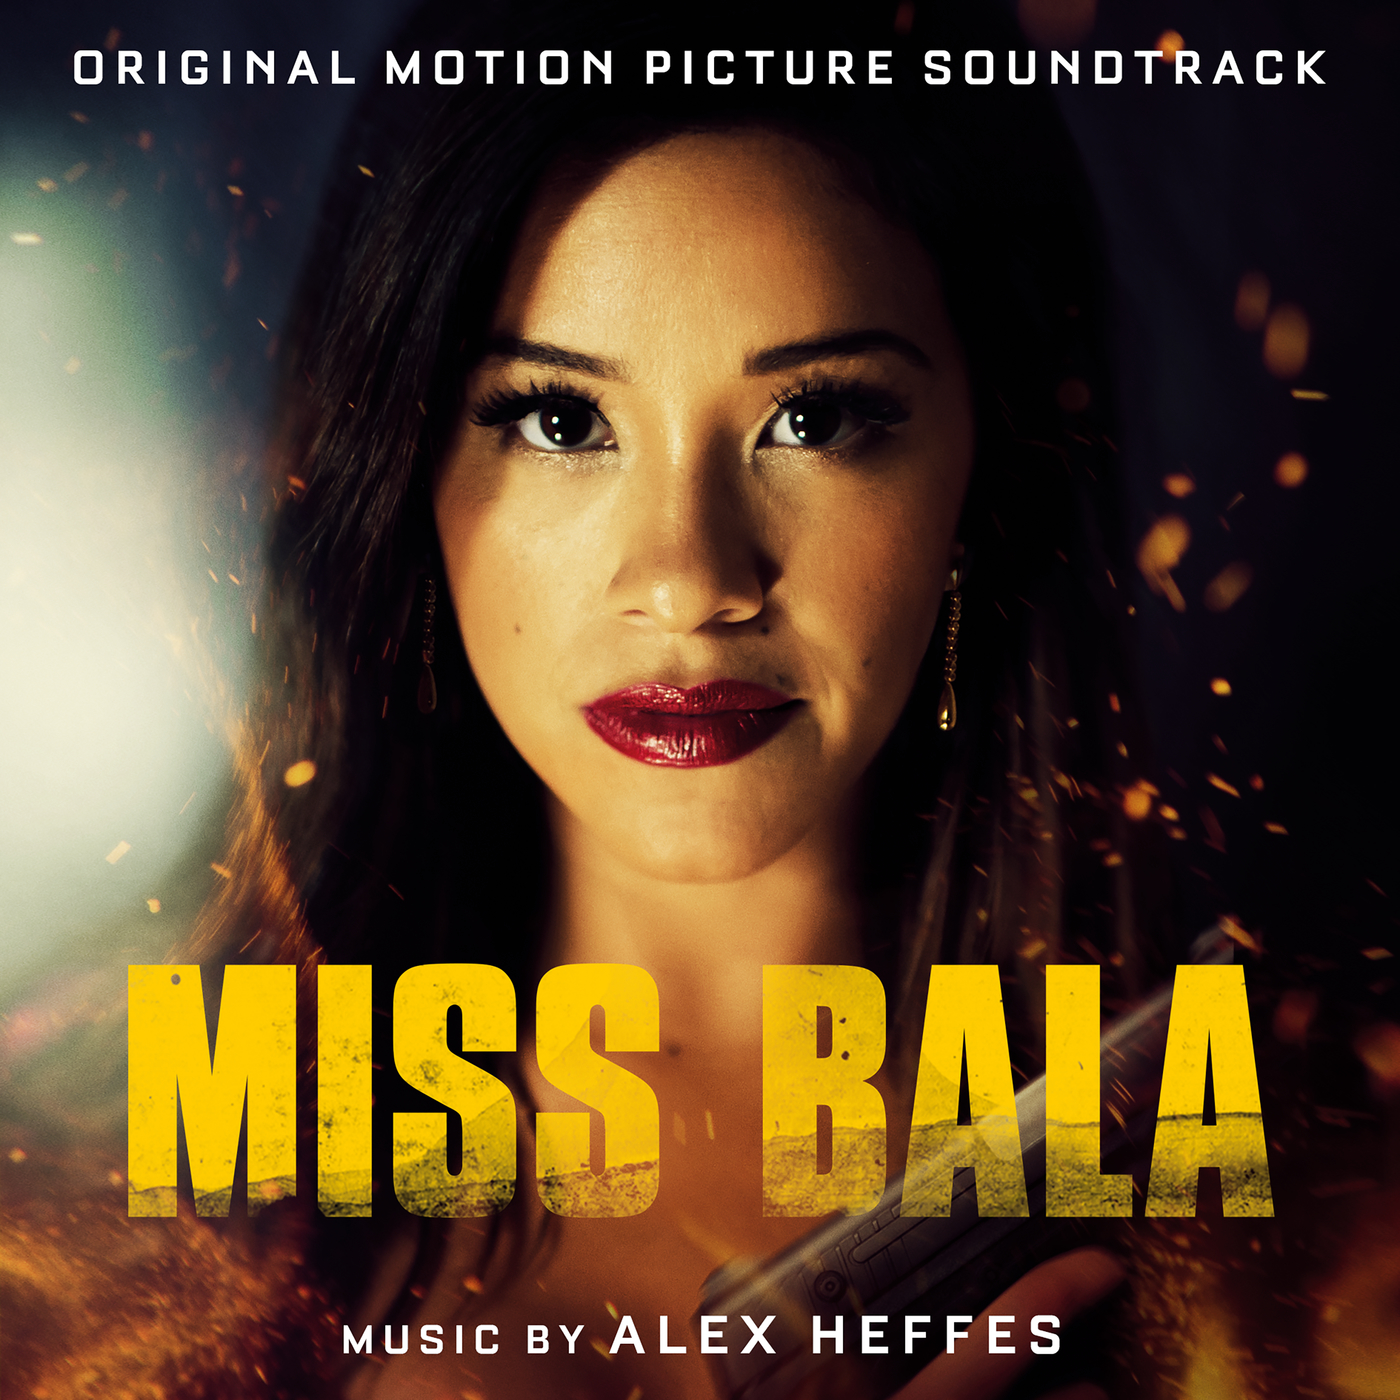 Miss Bala (Original Motion Picture Soundtrack) - Alex Heffes